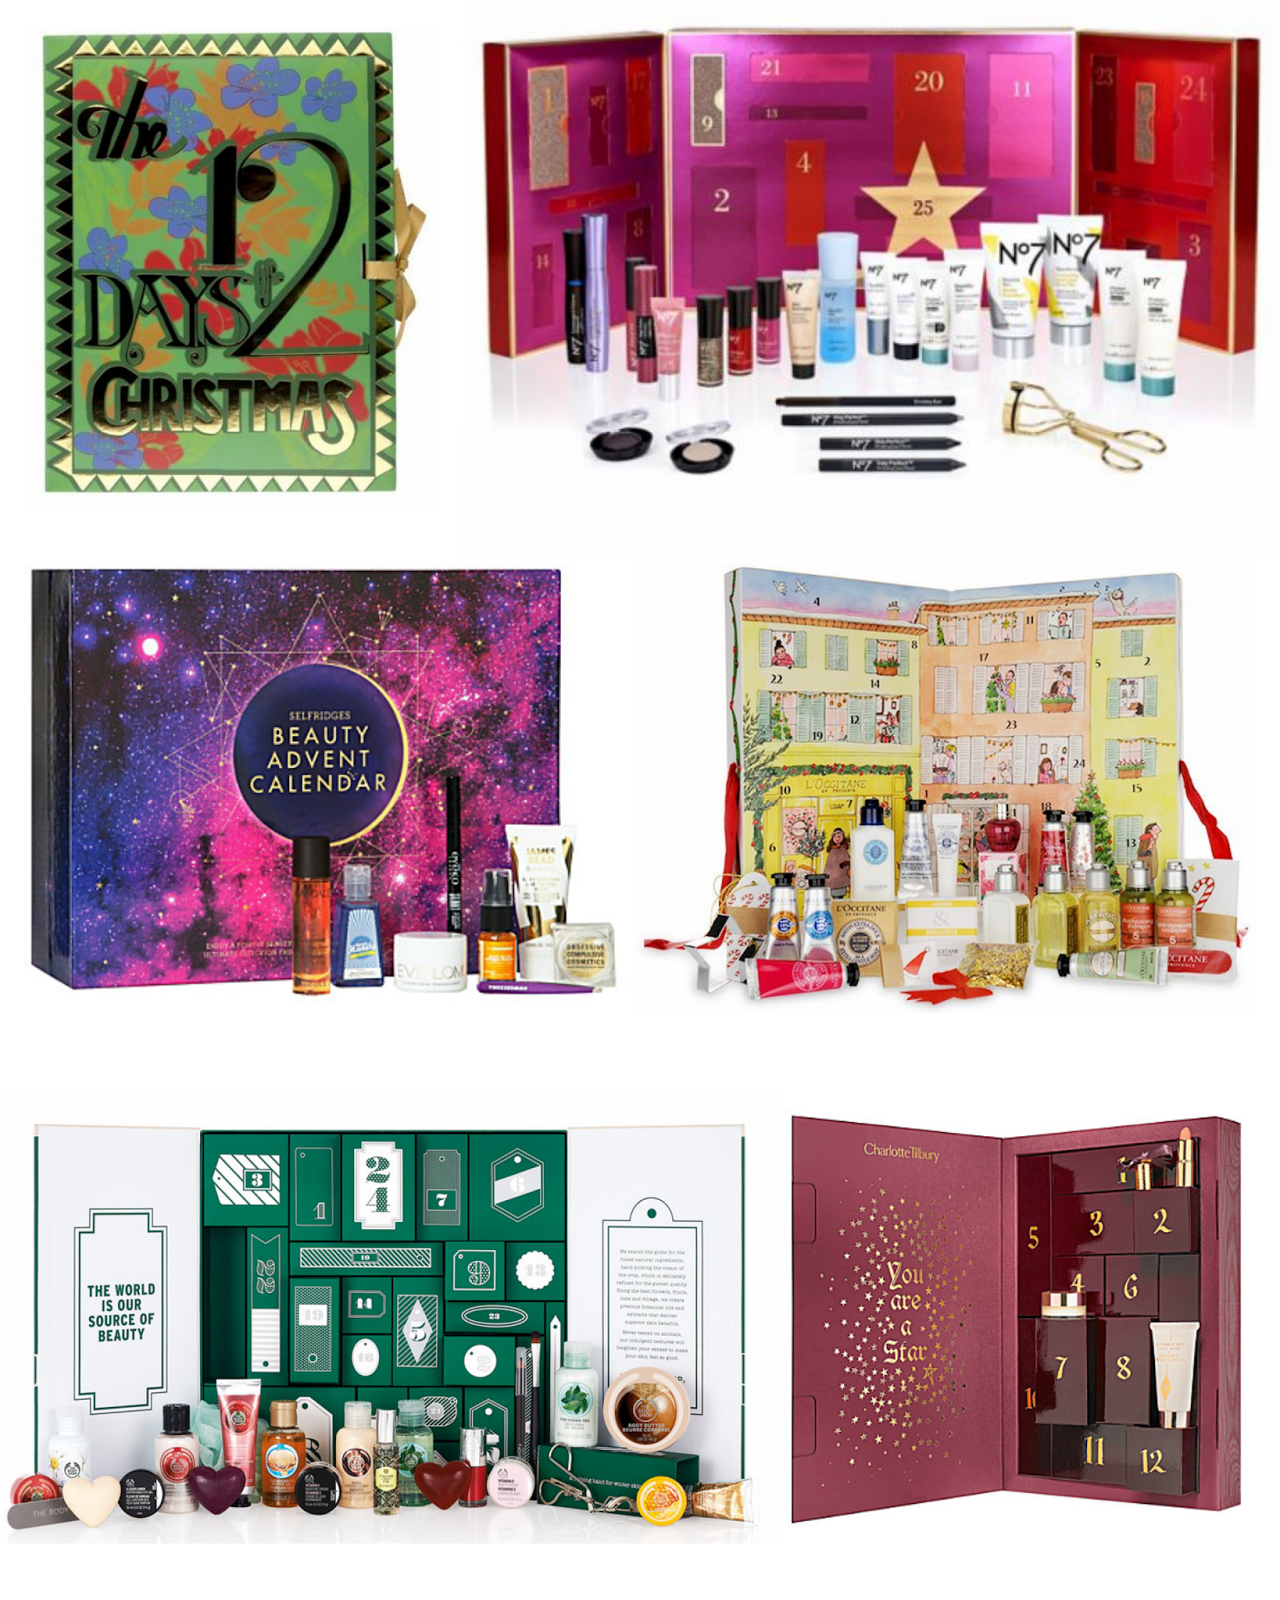 2015 BEAUTY ADVENT CALENDARS: MY TOP PICKS EYELINERFLICKS